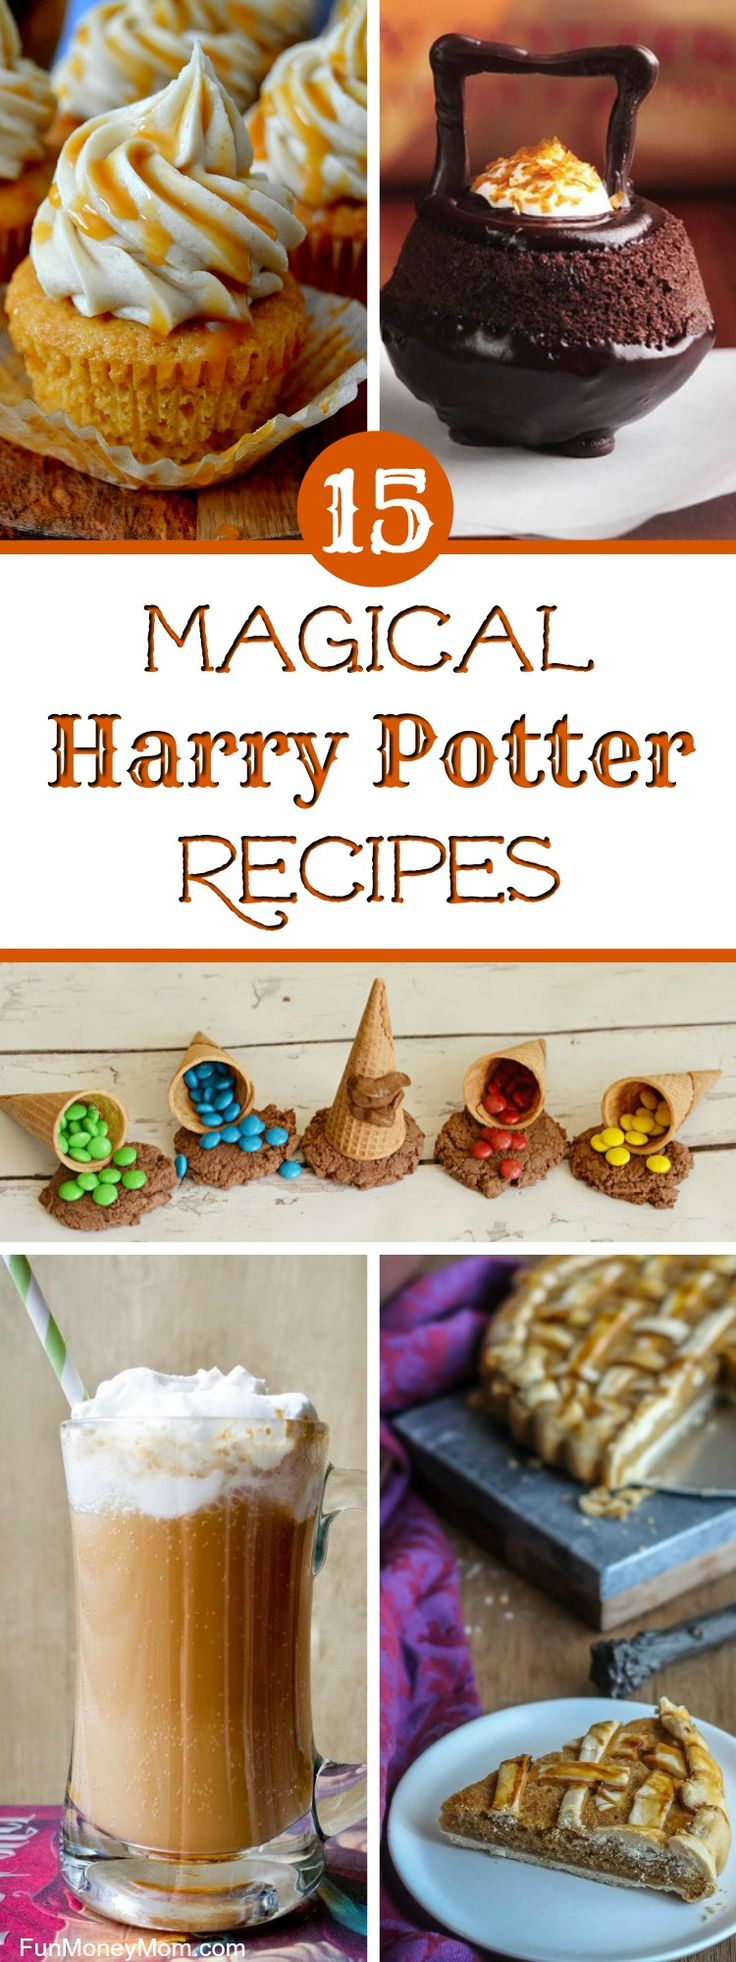 15 Magical Harry Potter Recipes